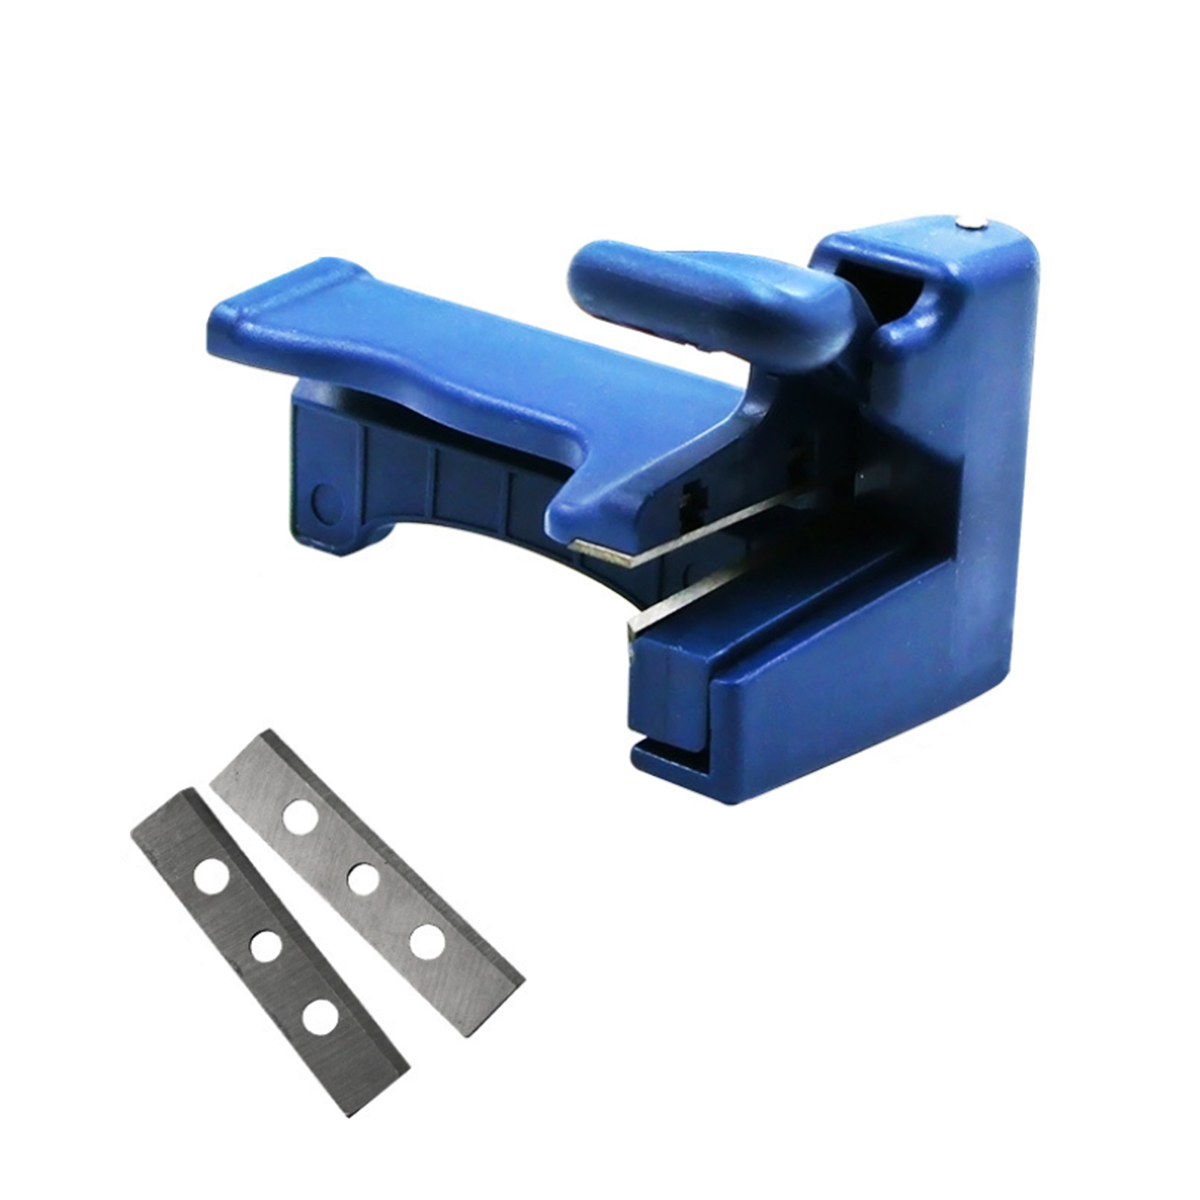 ANENG Double Edge Trimmer Manual Edge Bending Cutter Wood Head And Tail Trimming Carpenter Hardware Machine Set